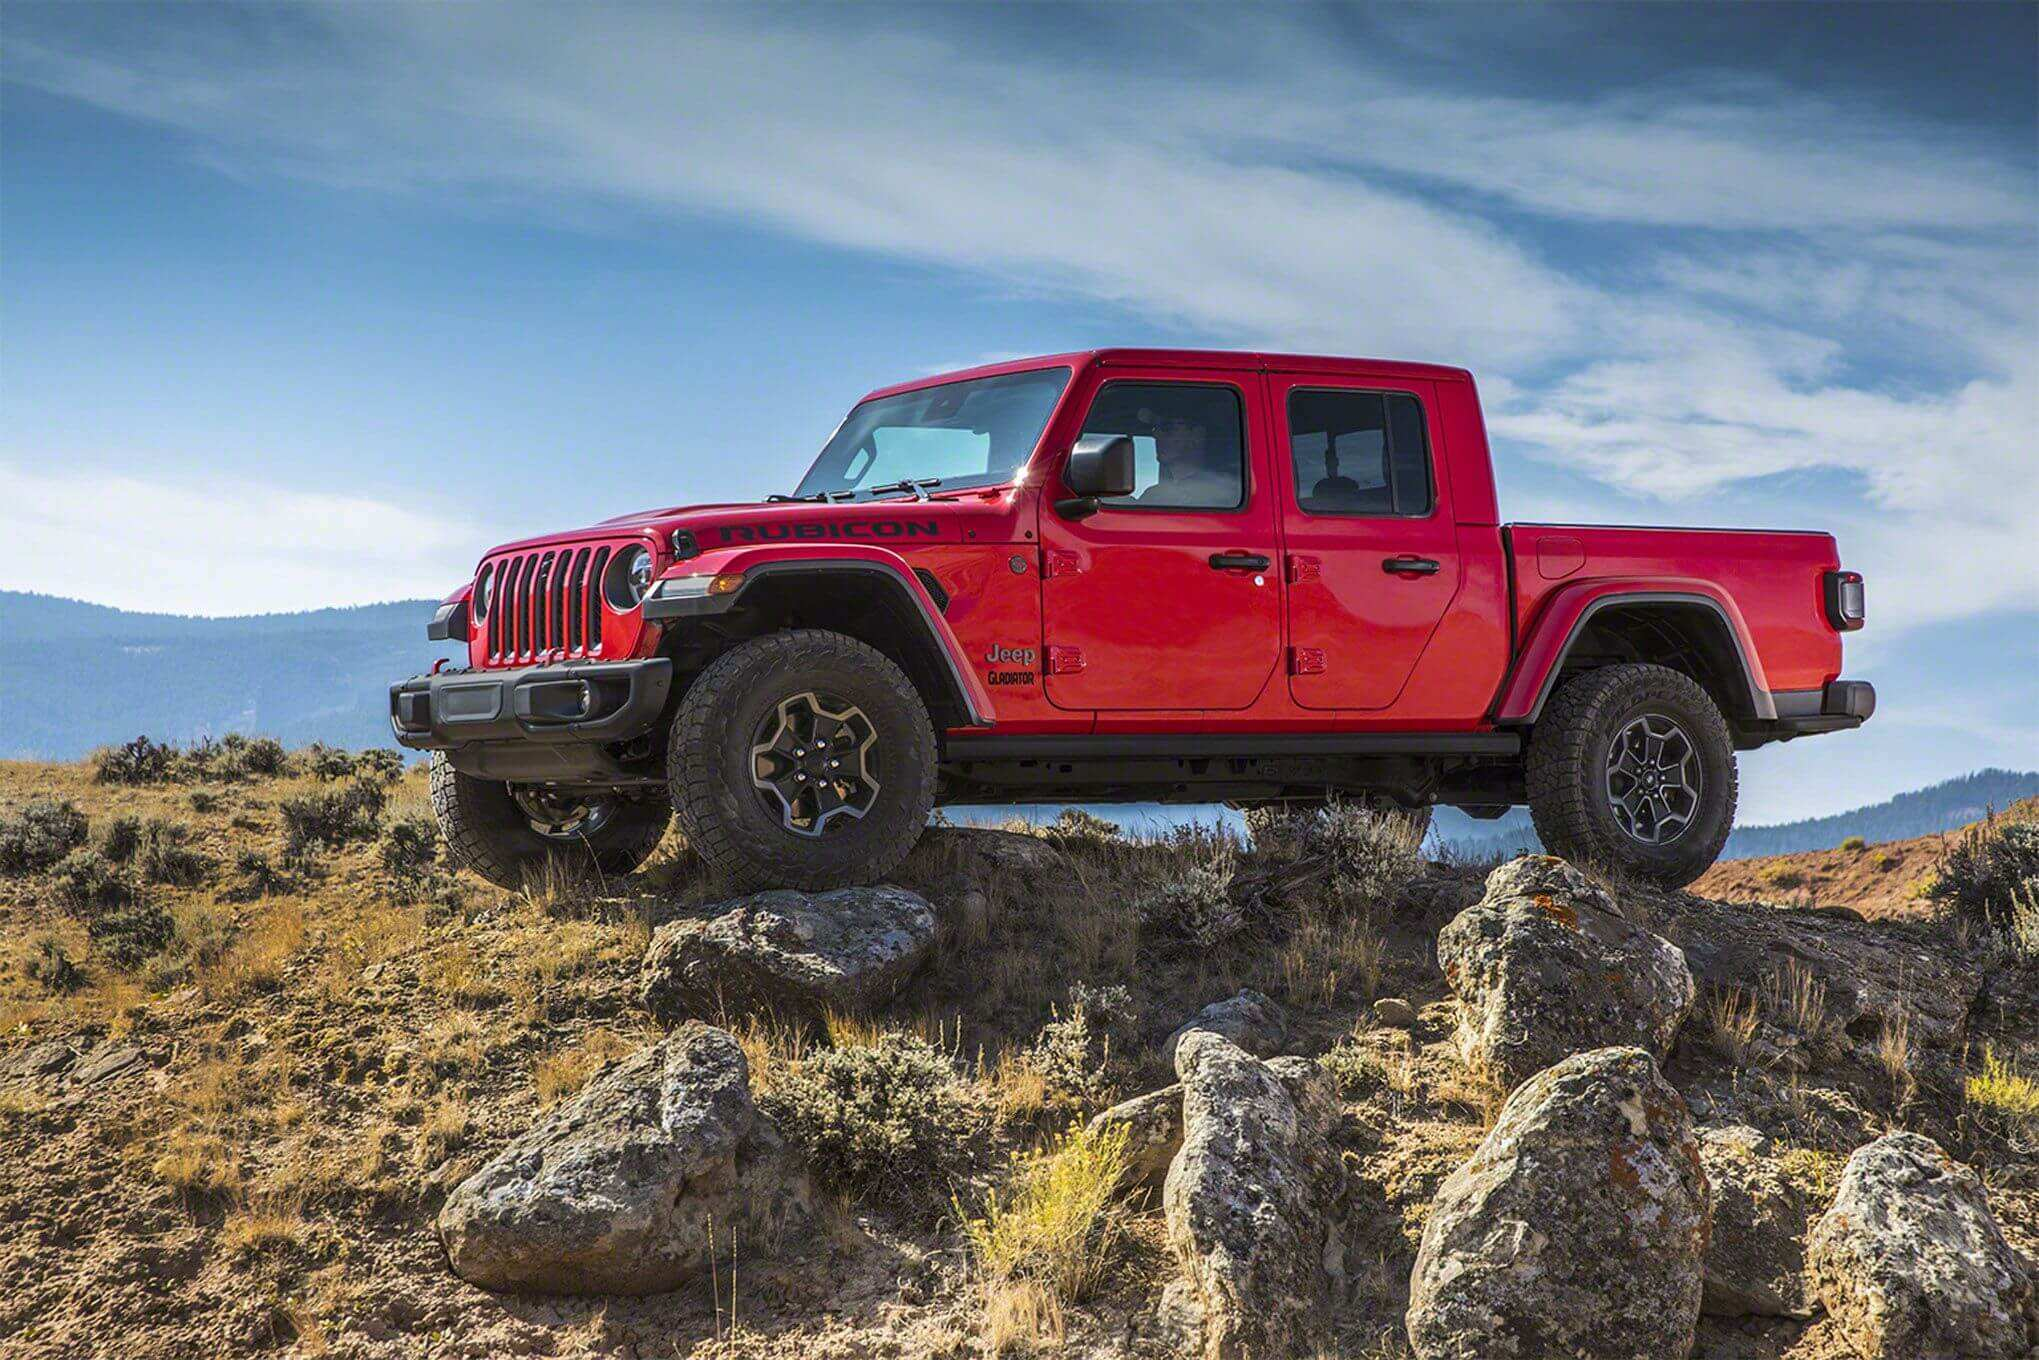 33 Great 2020 Jeep Gladiator Overland Youtube Reviews by 2020 Jeep Gladiator Overland Youtube